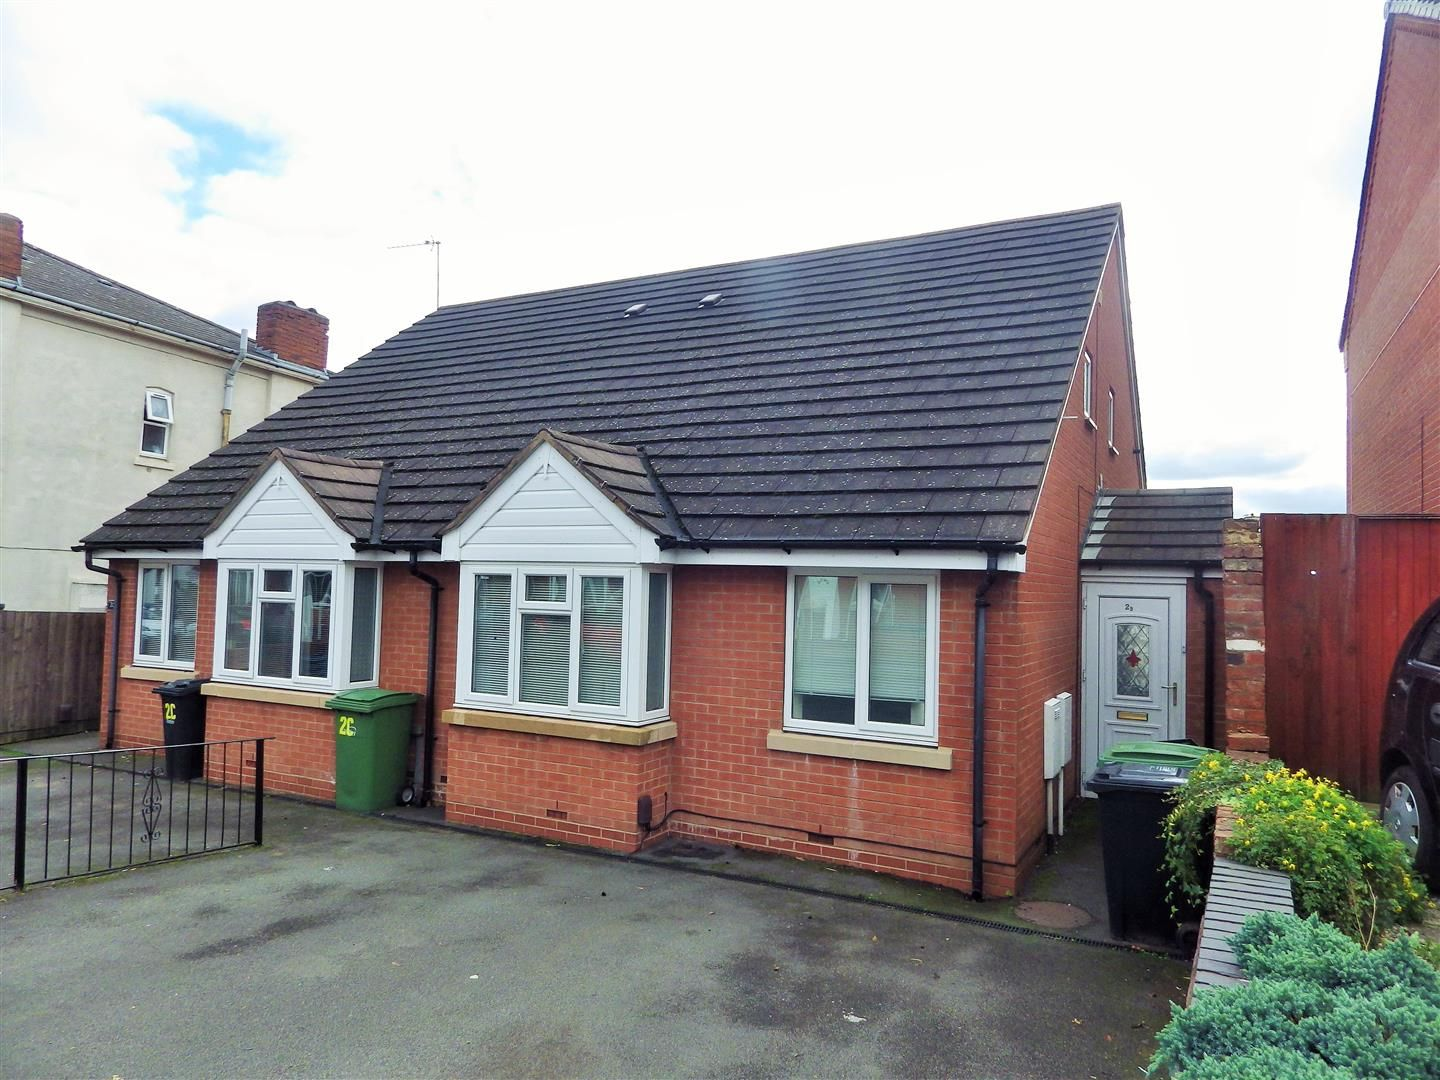 3 bed semi-detached-bungalow for sale 1